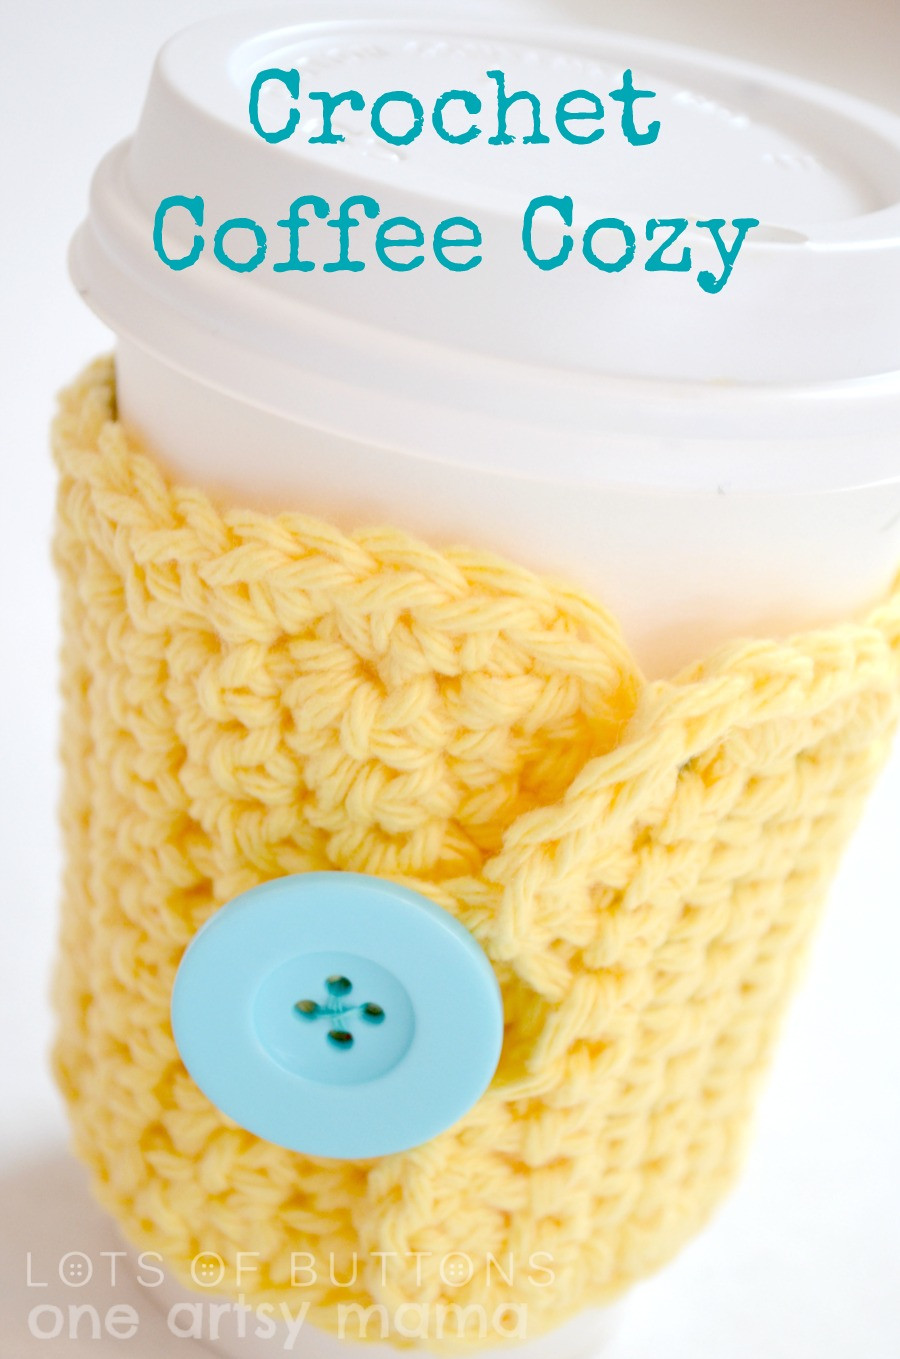 Crochet Coffee Cup Cozy Lovely Crochet Coffee Cozy Amy Latta Creations Of Crochet Coffee Cup Cozy Best Of Craftdrawer Crafts Free Easy to Crochet Mug Cozy Patterns